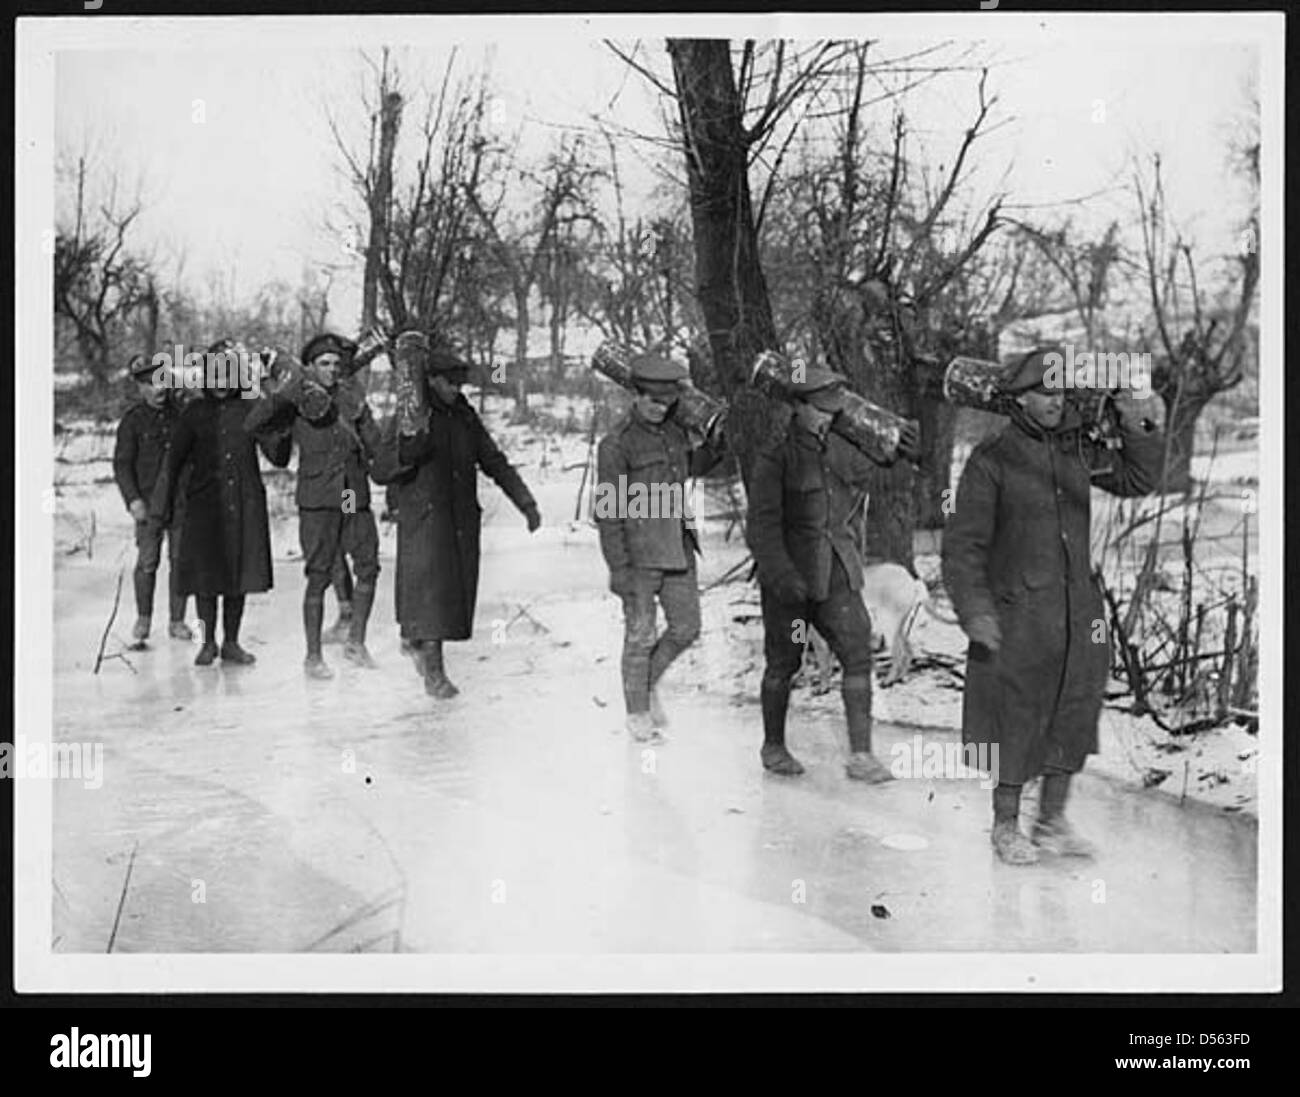 Gunners bringing charges up to their guns across the ice - Stock Image